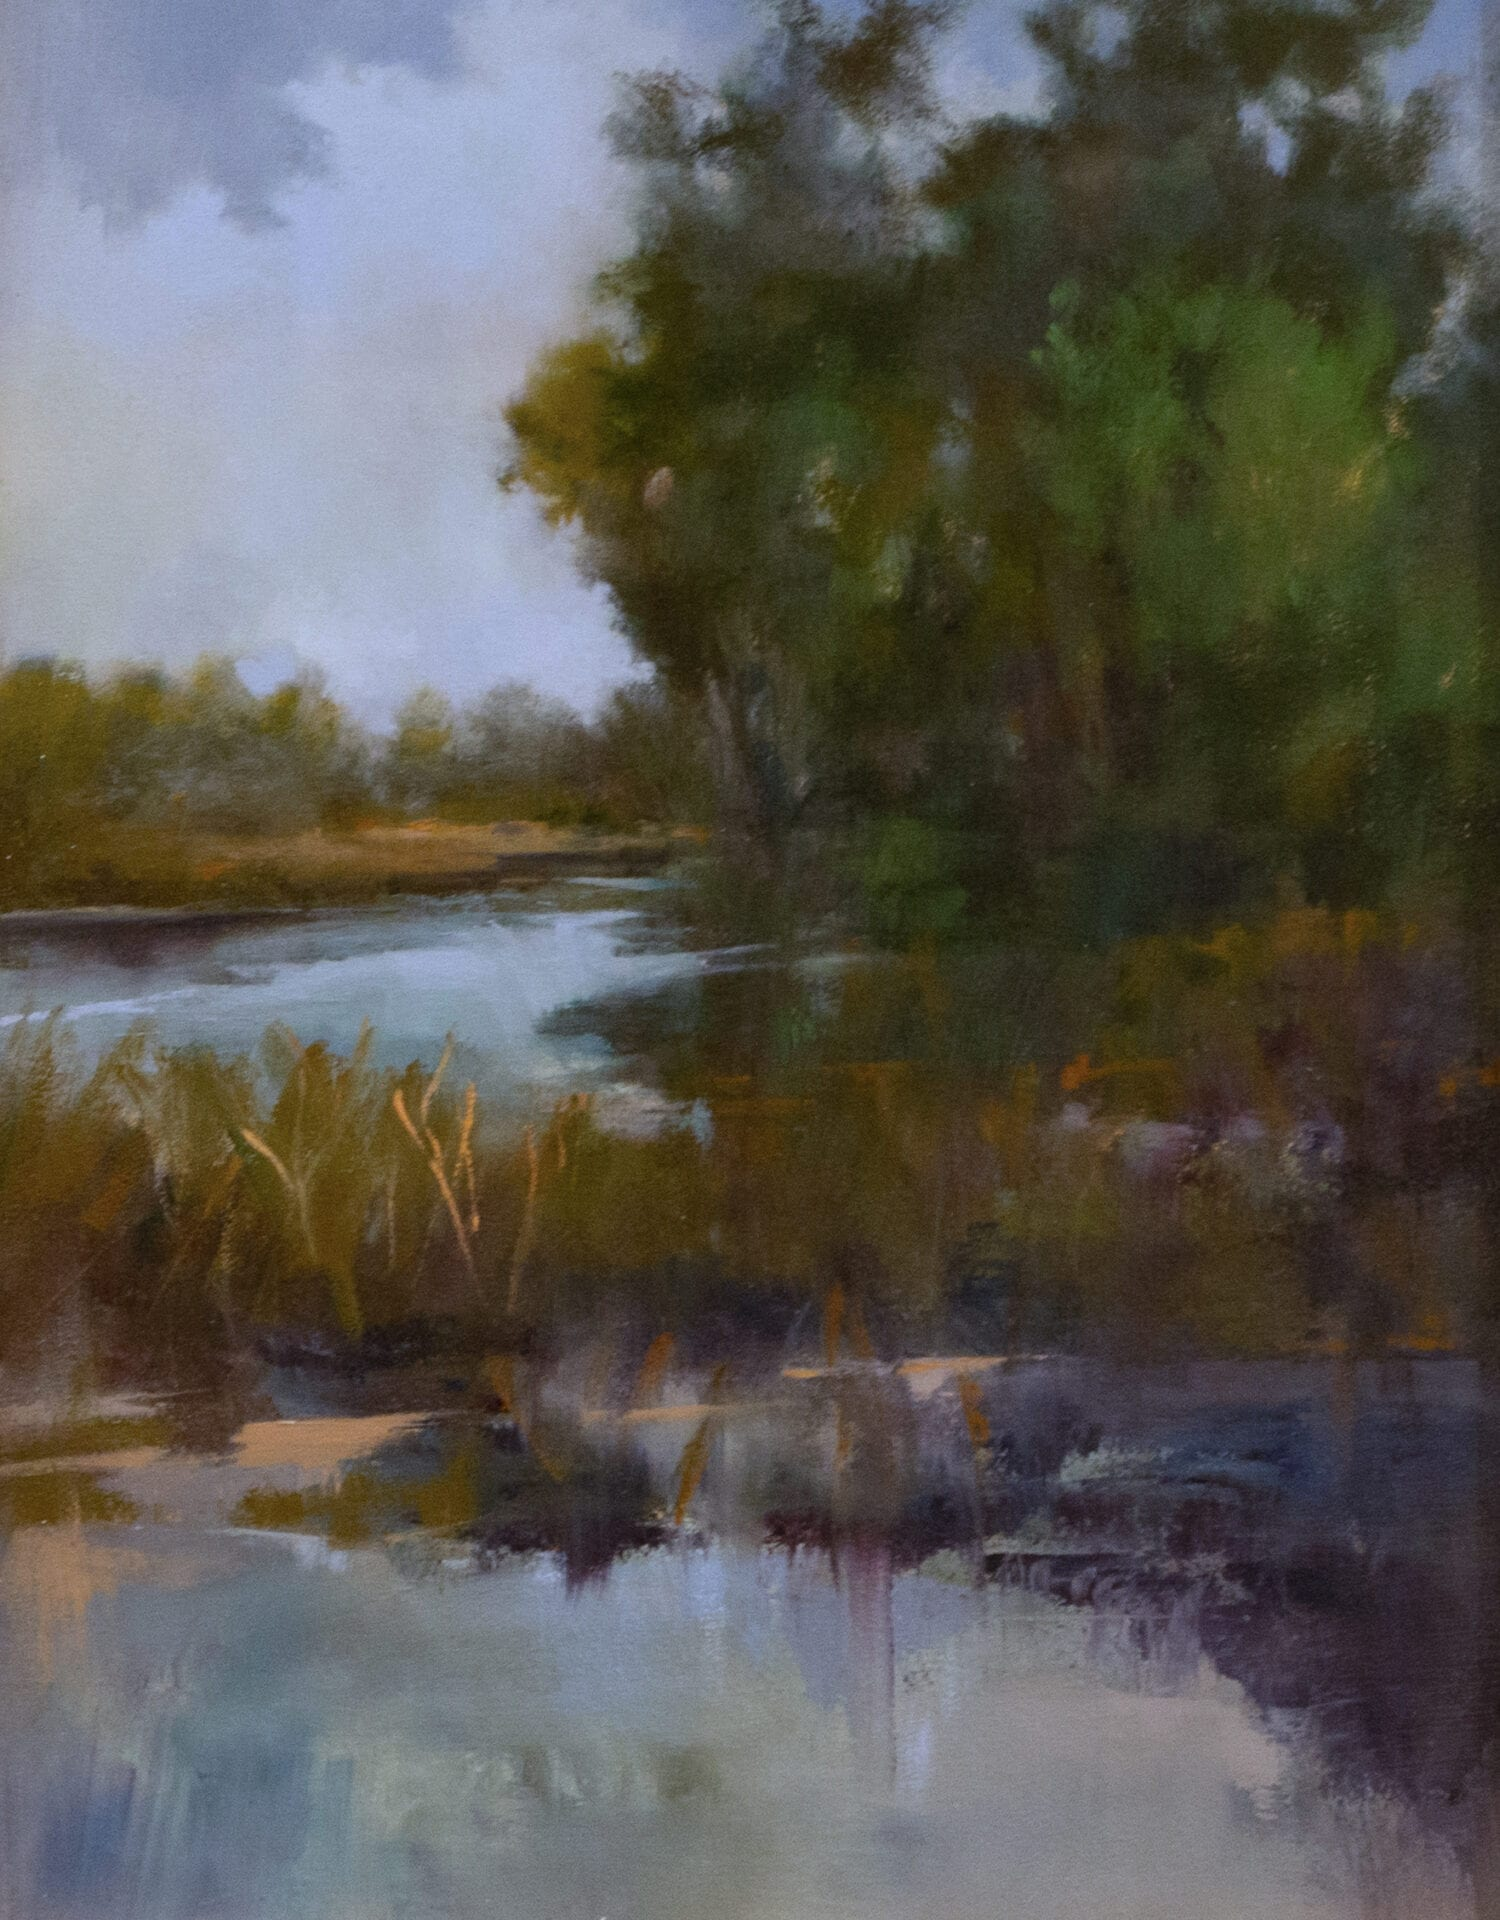 Diane Washa - spring-march frog - clatter peace breaks out